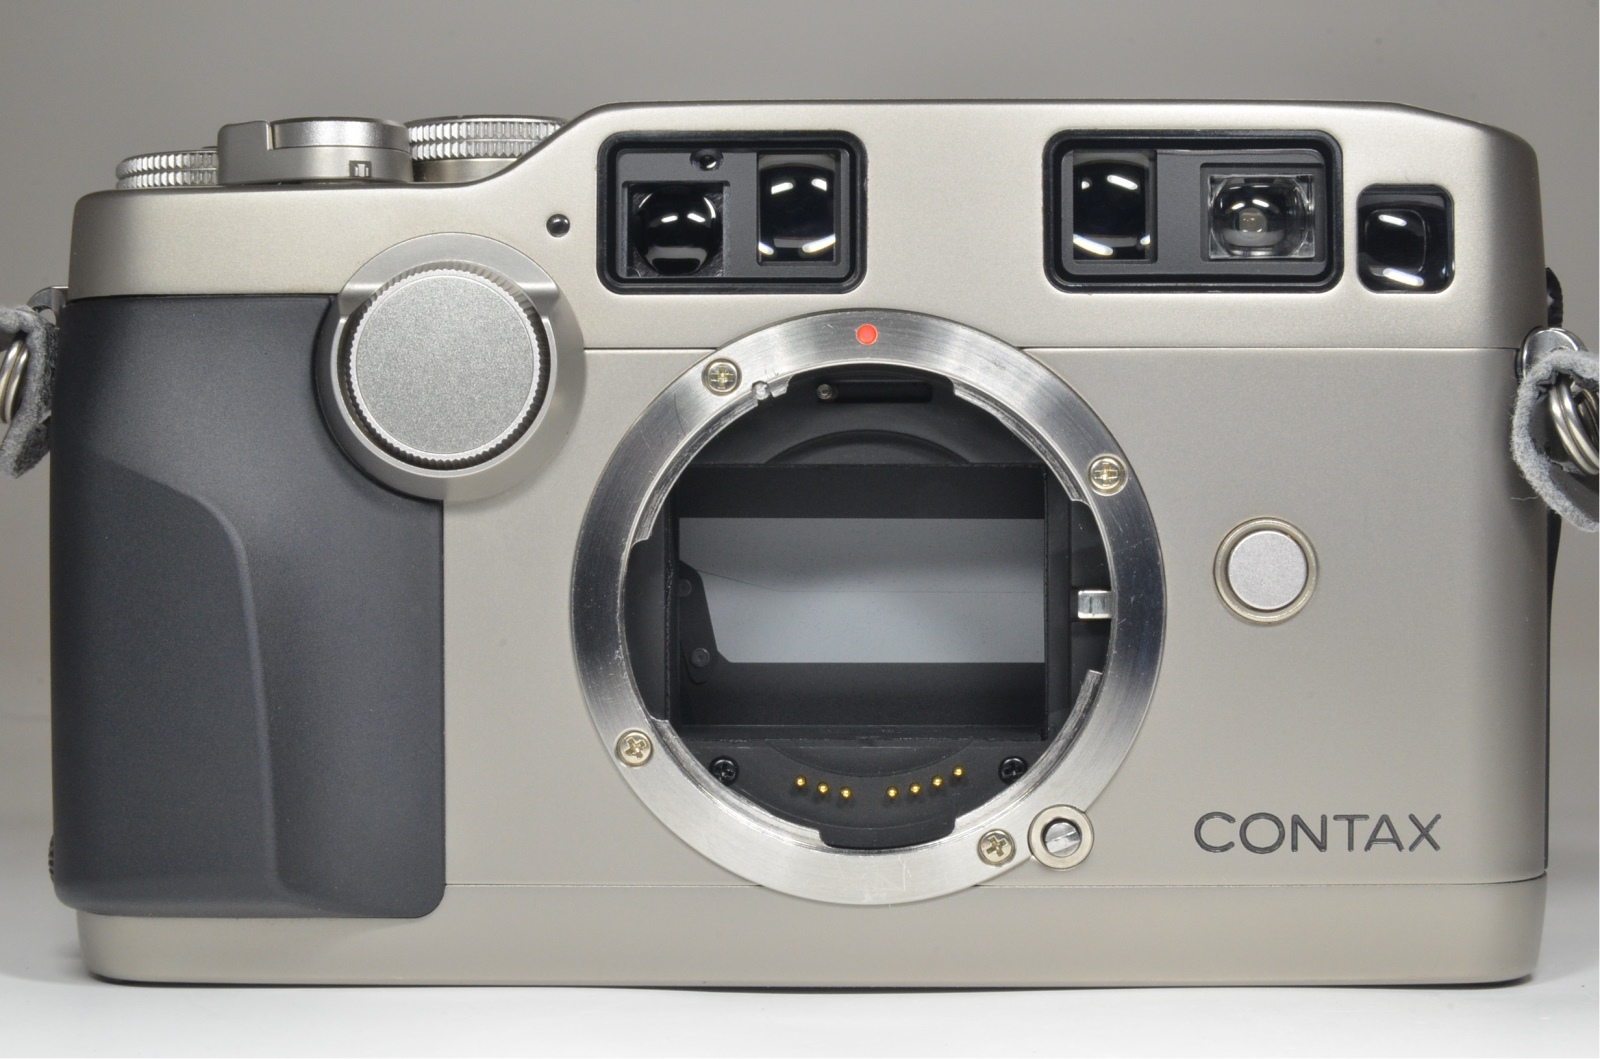 contax g2 camera with planar 45mm f2, biogon 28mm f2.8, sonnar 90mm f2.8, tla200